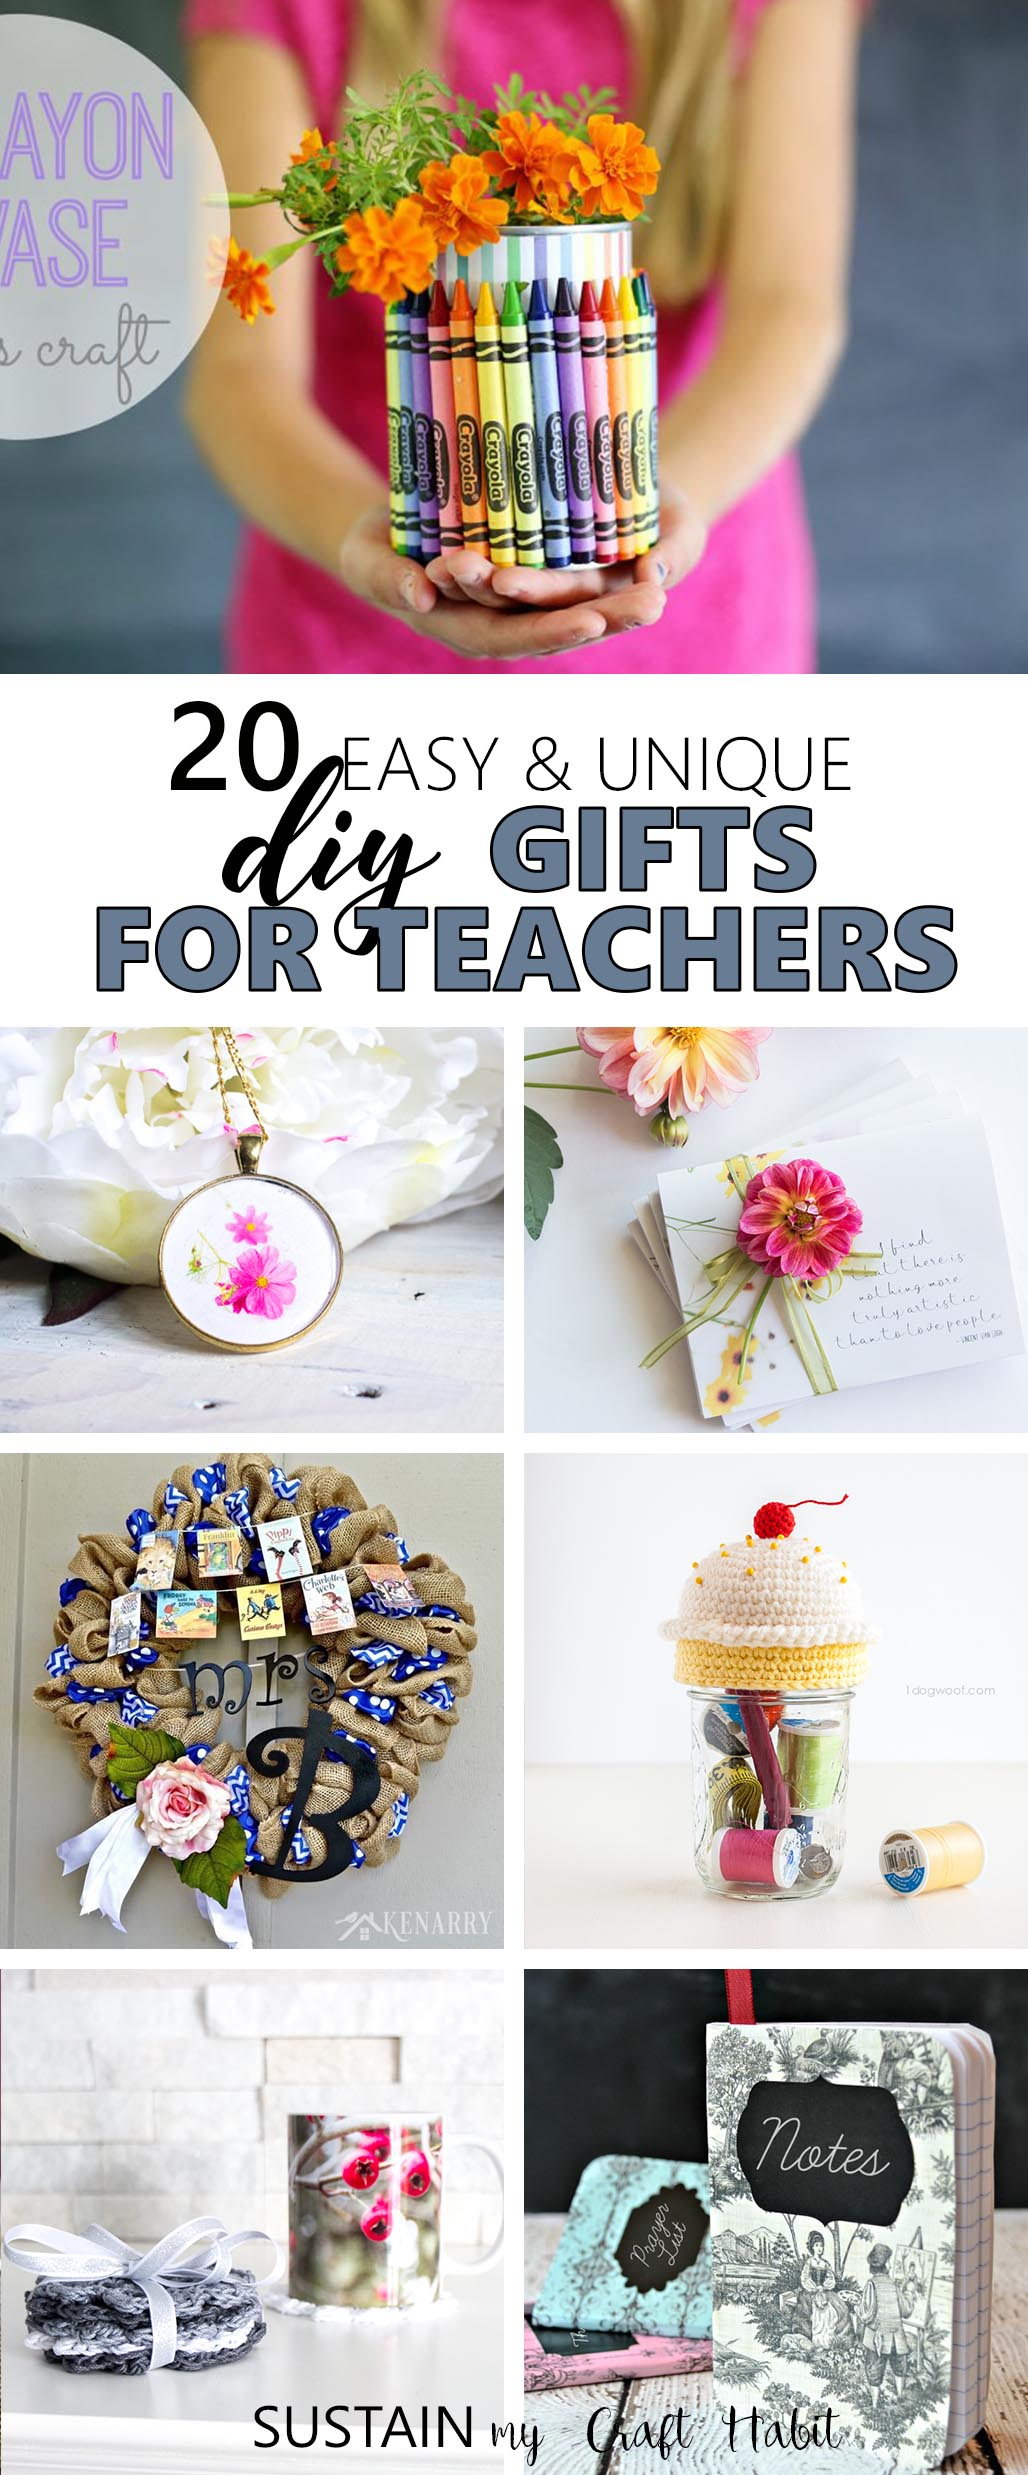 Unique and thoughtful gifts for teachers you can make.